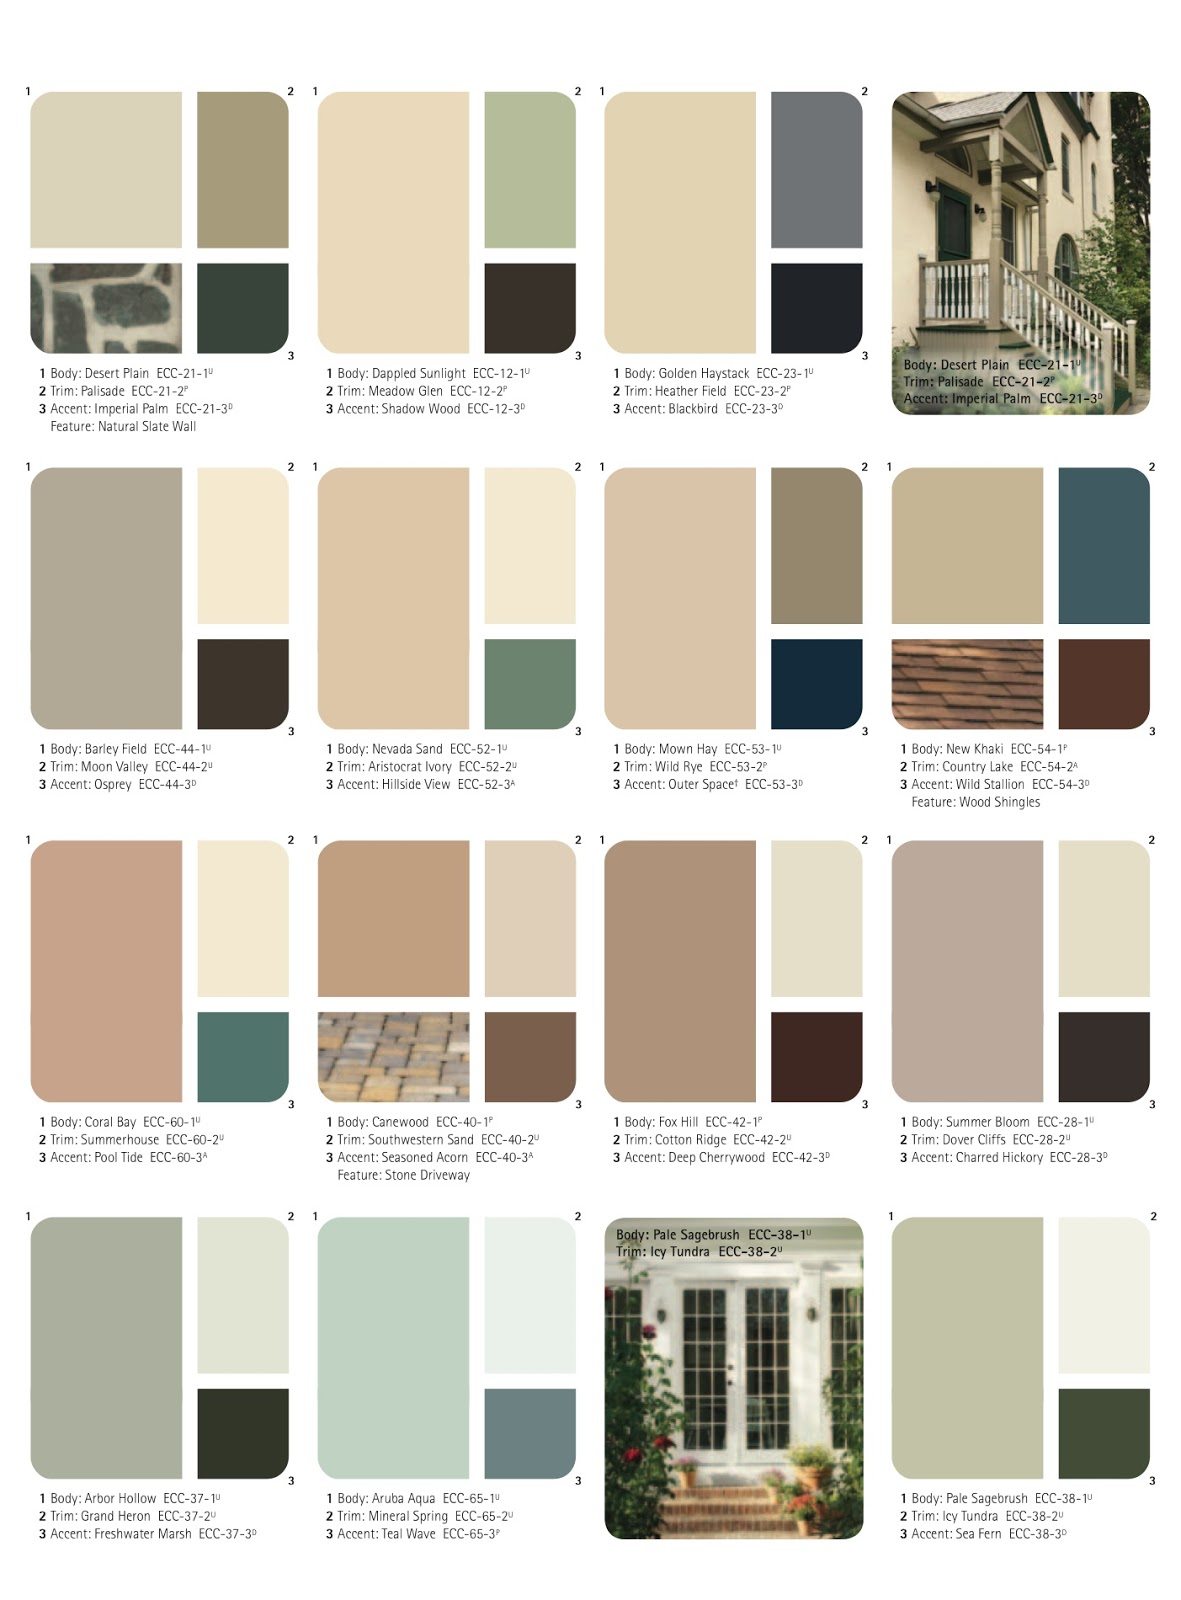 Home depot house paint home painting ideas Outside color for house